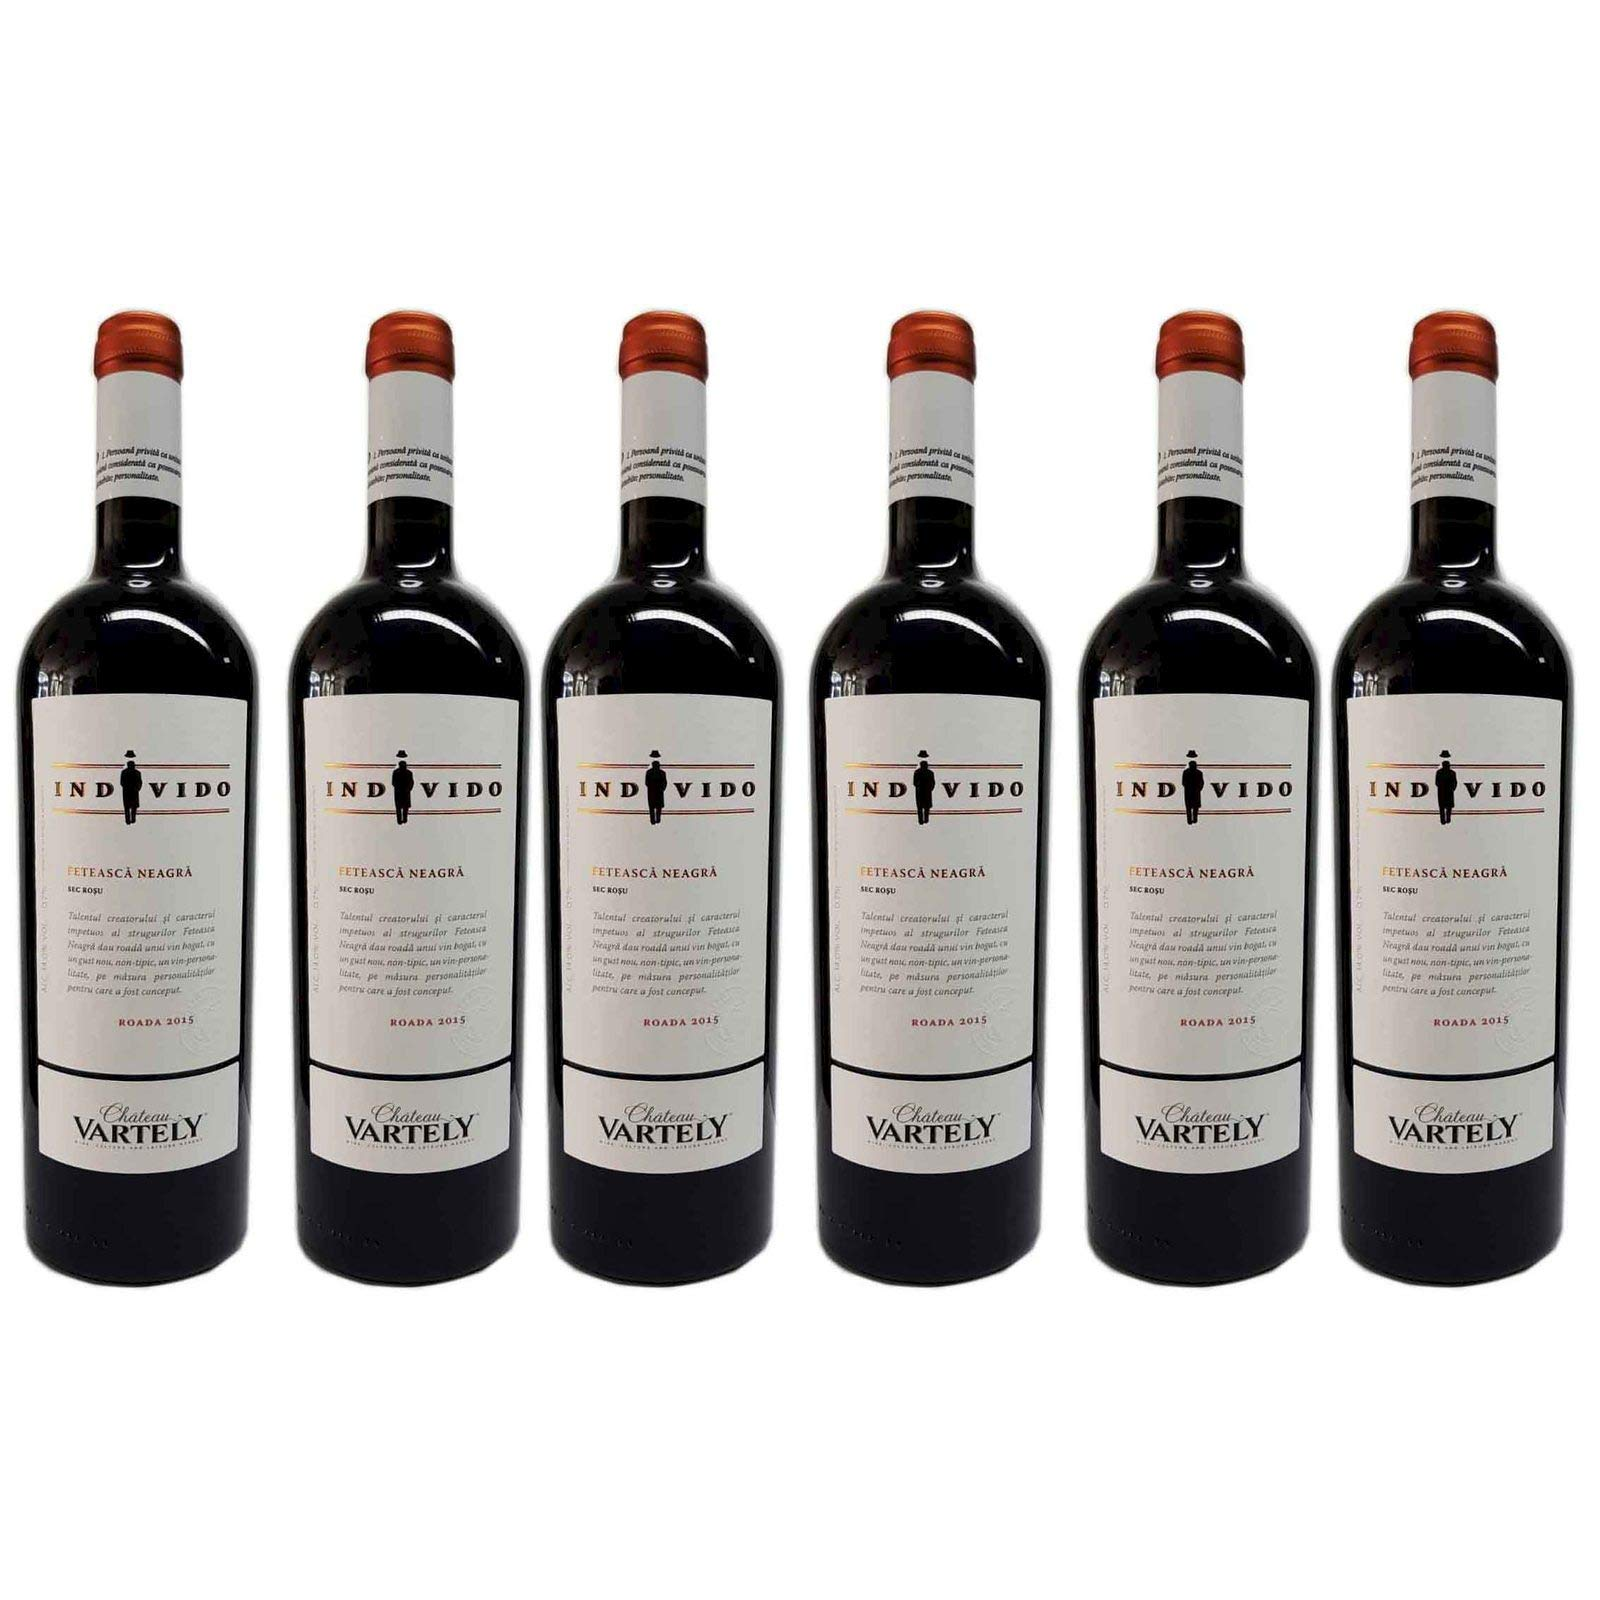 6x INDIVIDO red wine Feteasca Neagra from Chateau Vartely 0.75l 14% alcohol vintage 2015 from Moldova by Chateau Vertely (Image #1)